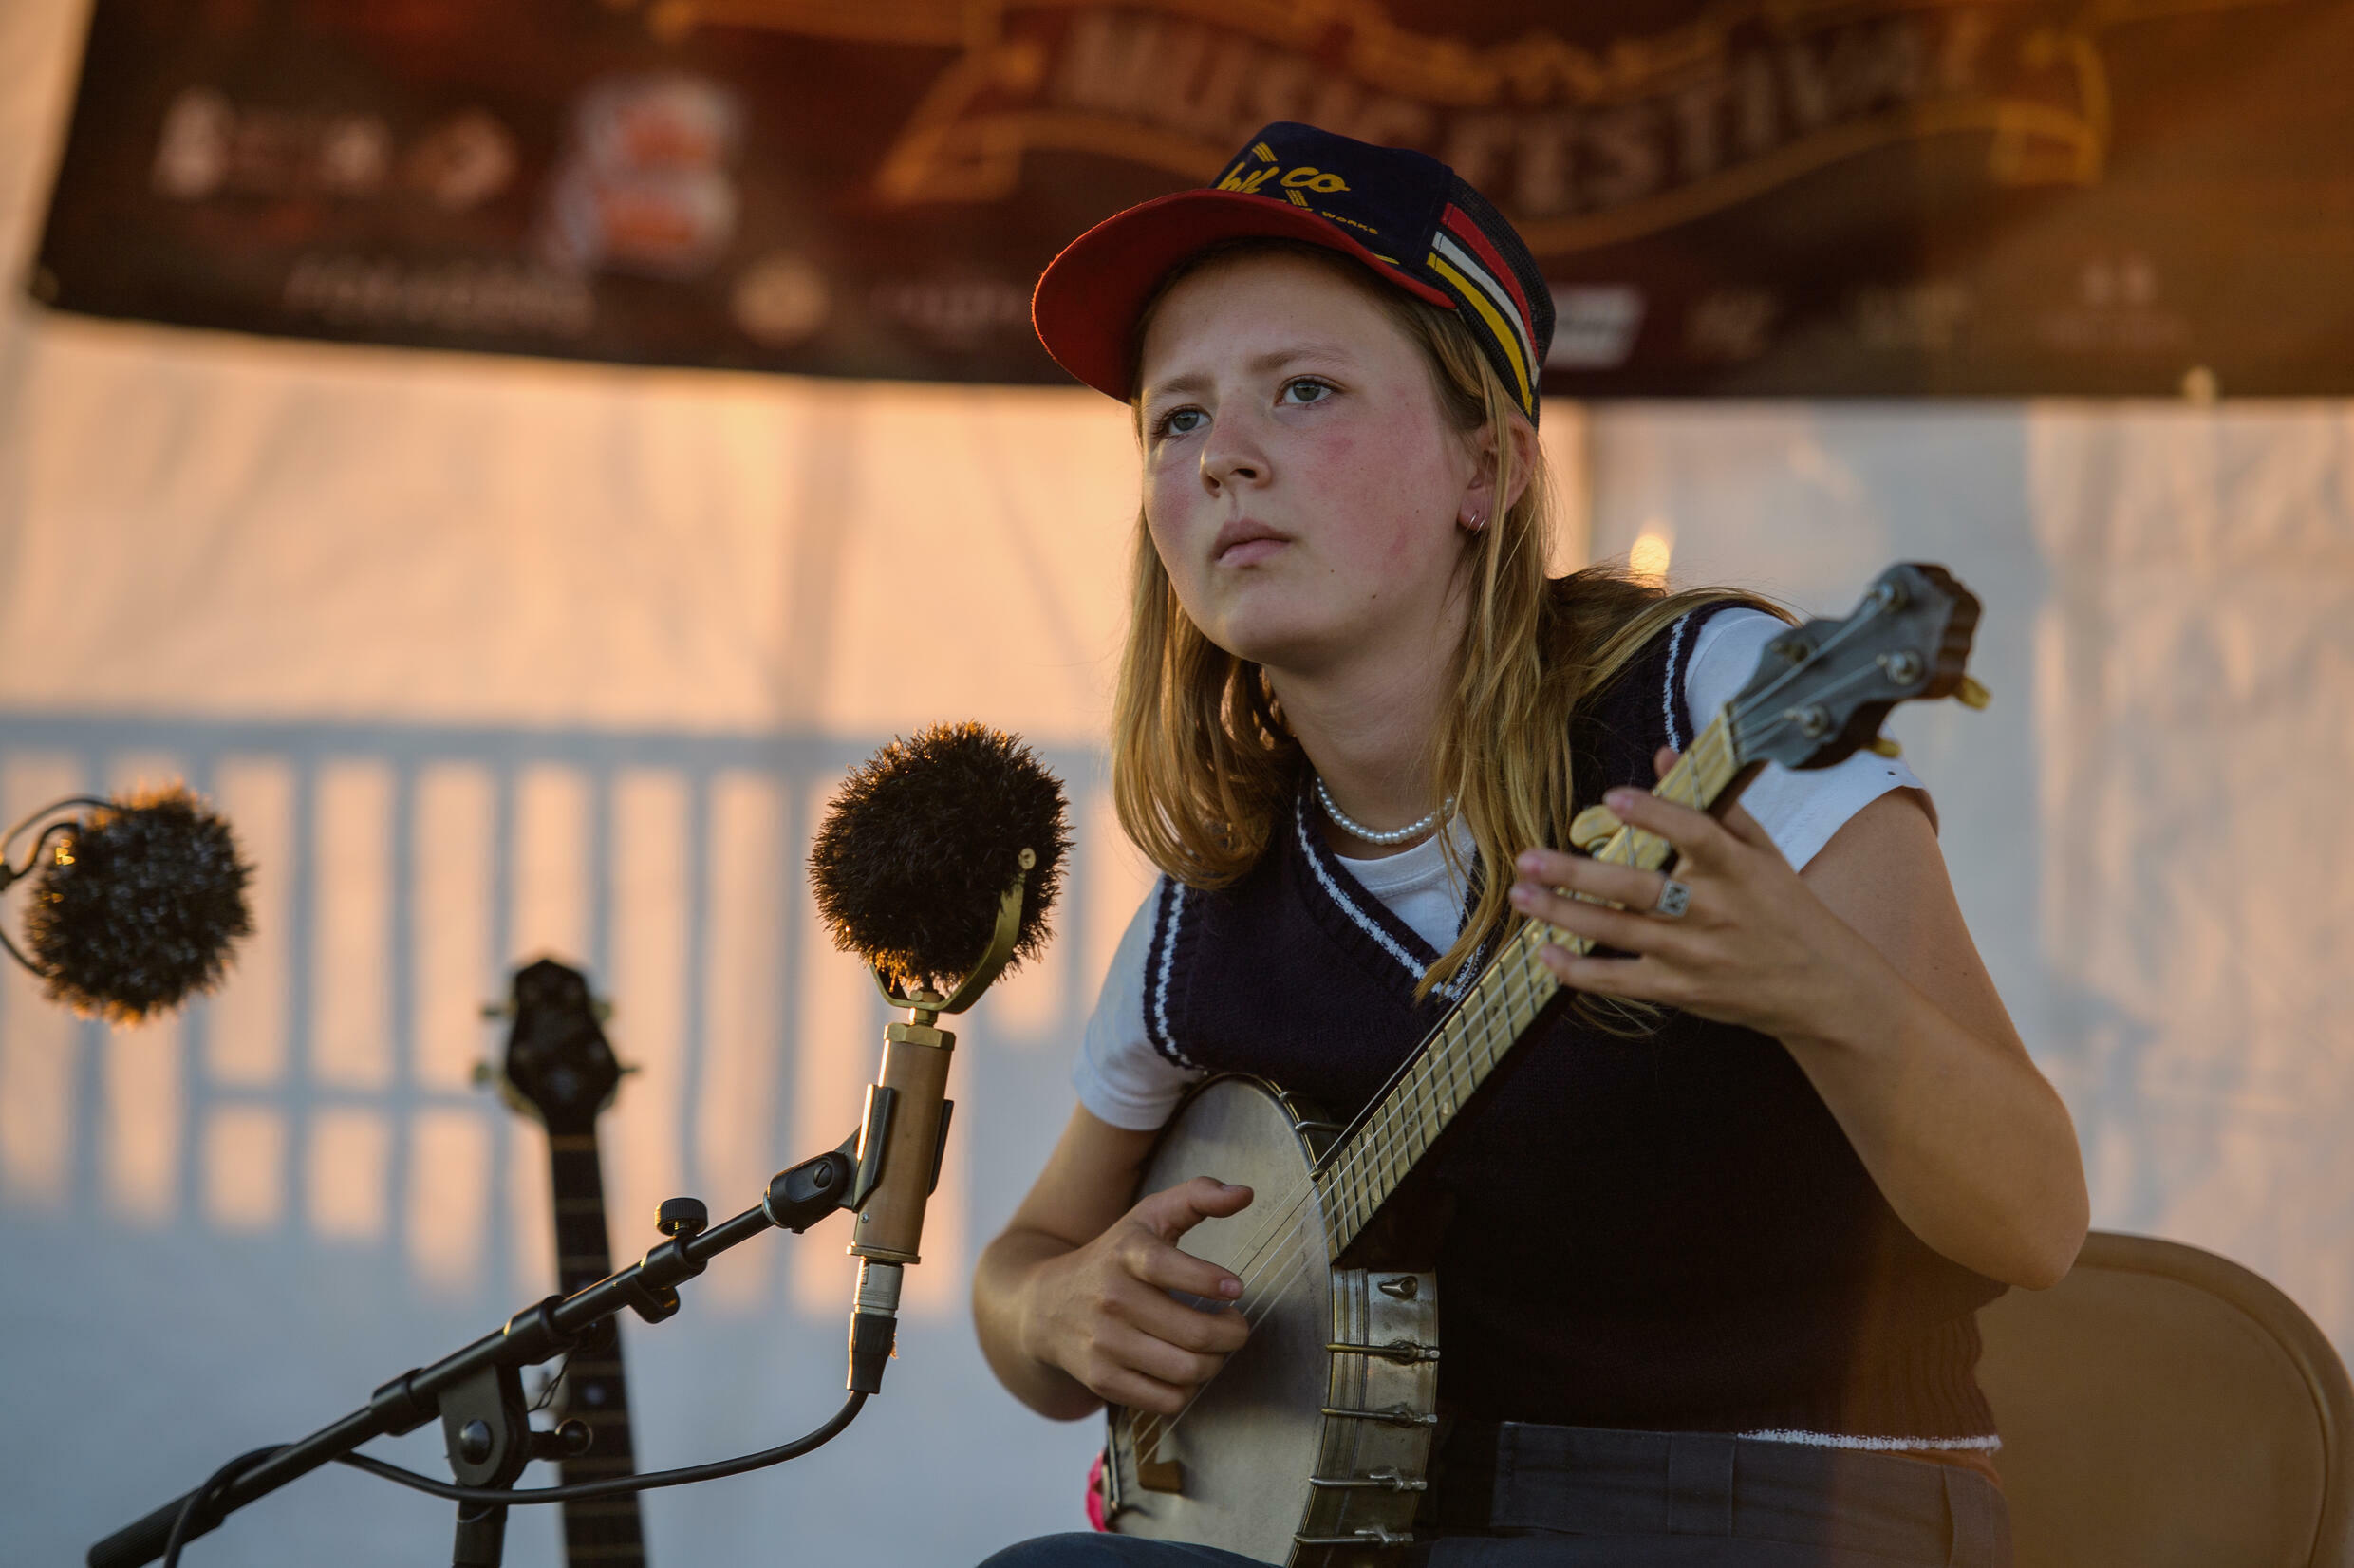 At an age when most teens are busy learning the latest Tik Tok dance craze, banjo virtuoso Nora Brown has just released her second old-school twang album.